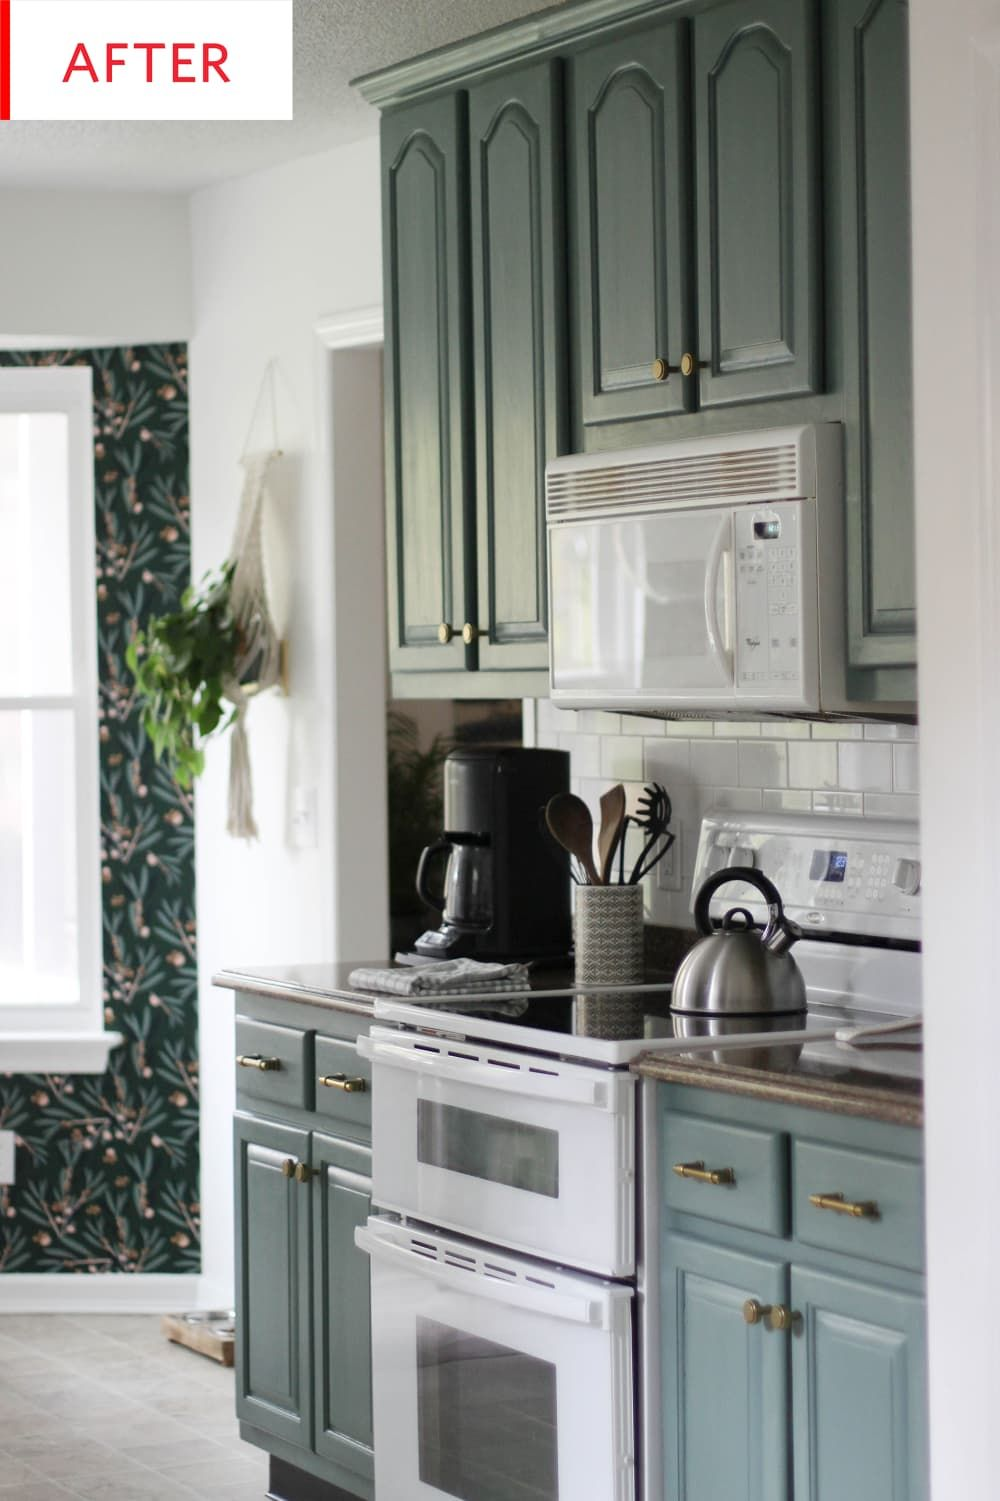 Before And After This Is Not One Of Those Wall To Wall White Kitchen Remodels White Kitchen Remodeling Kitchen Design Small Kitchen Cabinets